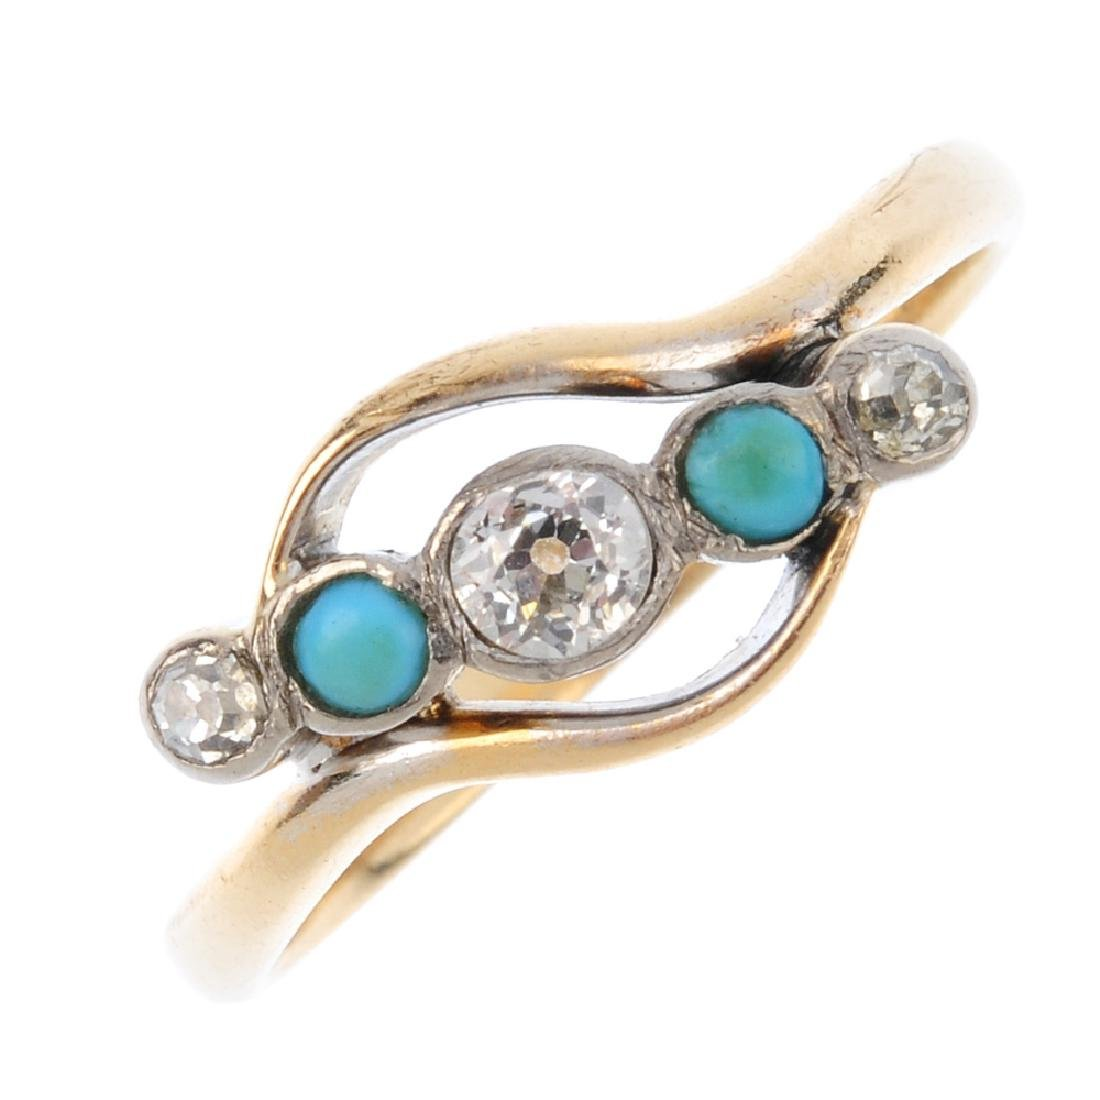 A mid 20th century turquoise and diamond five-stone